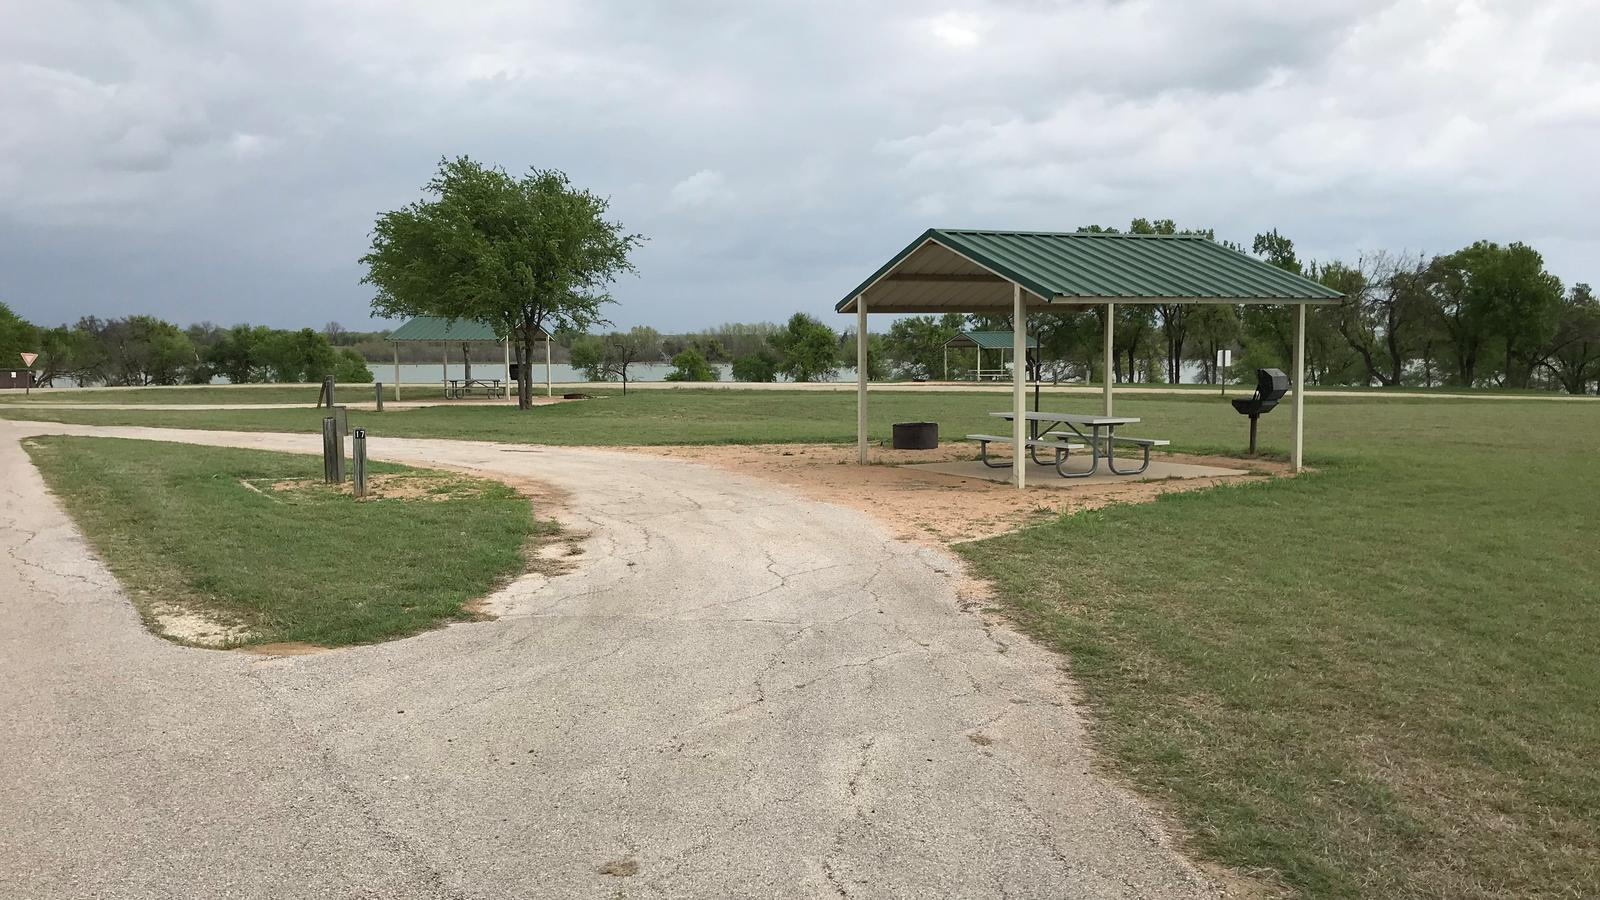 Pull through RV site with covered picnic table, grill, fire ring, and Waco Lake in the background